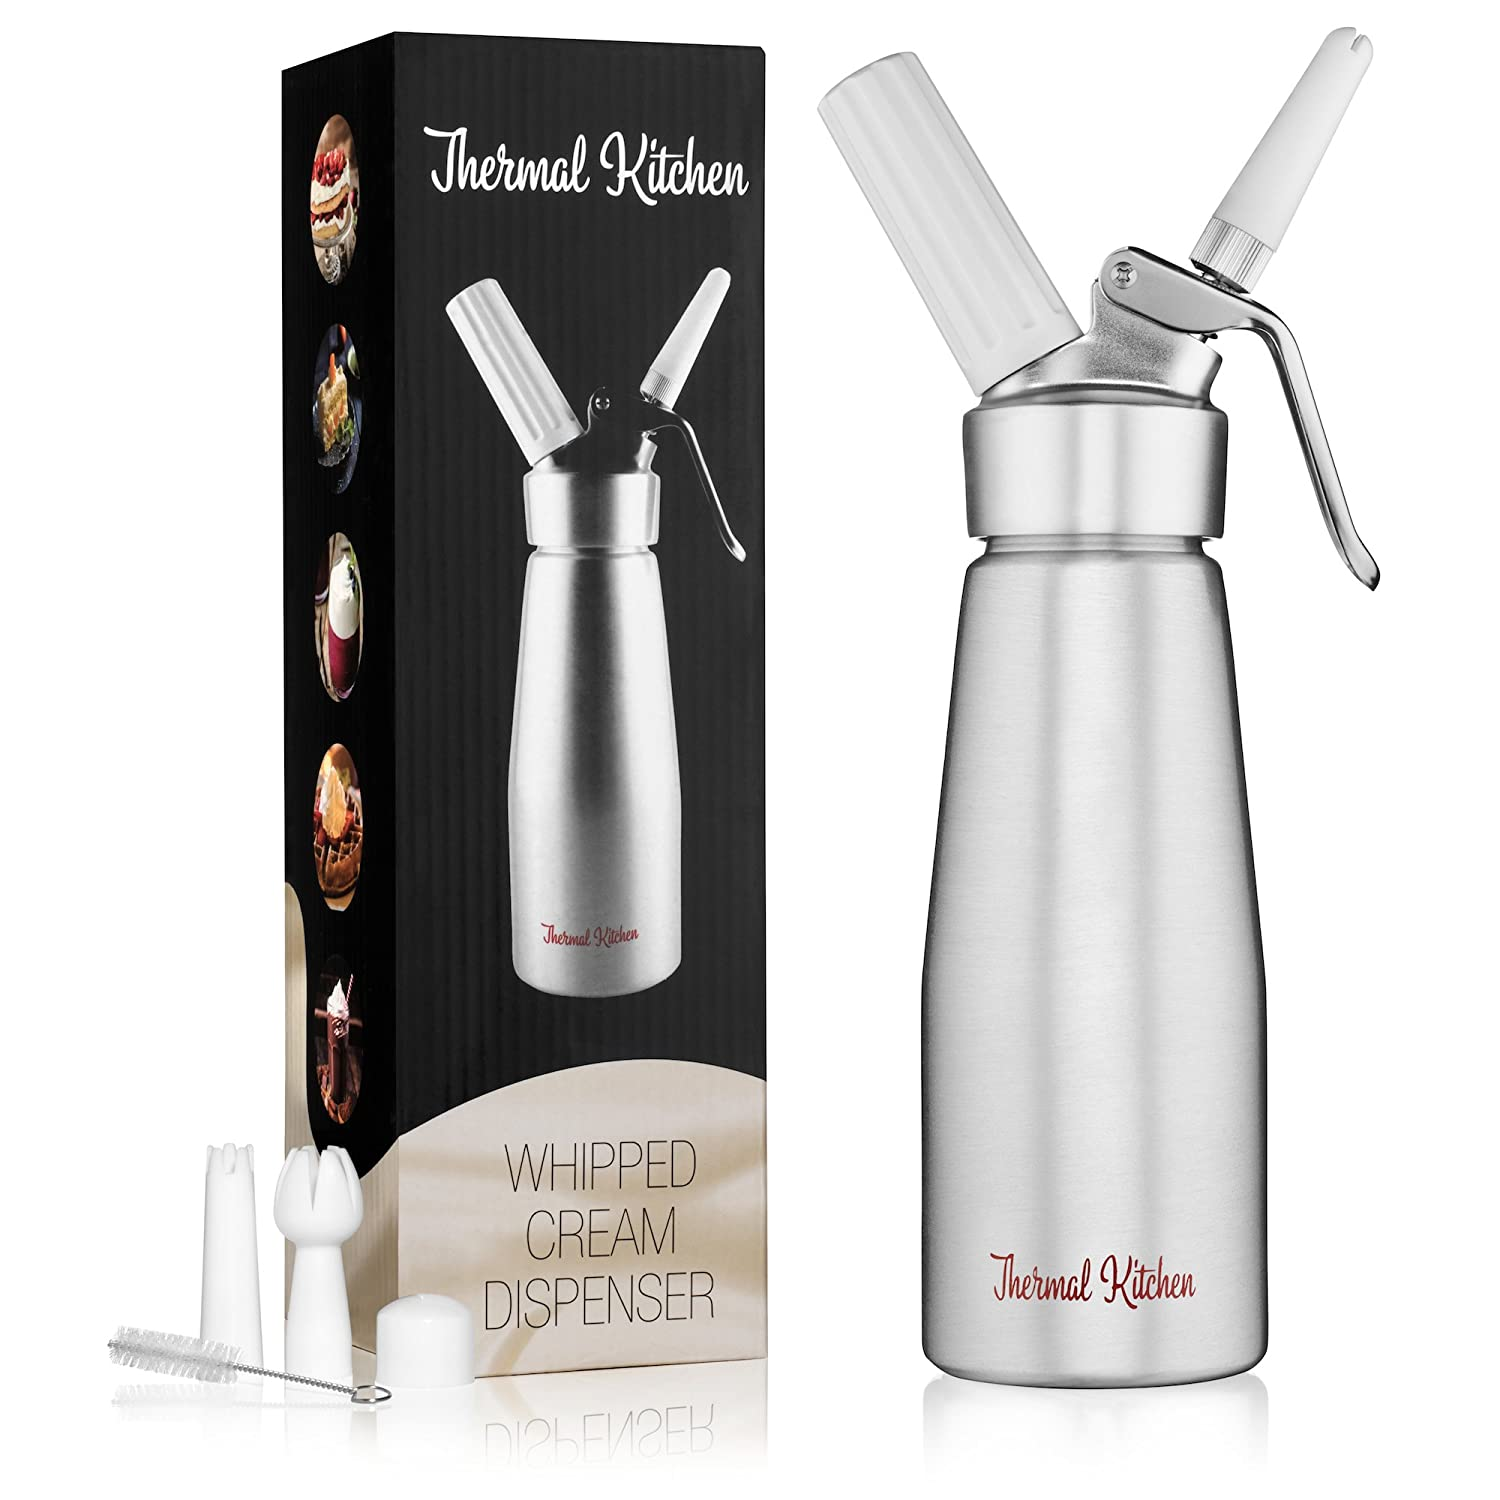 Professional Whipped Cream Dispenser – Reinforced Leak-Free Canister Optimized for Consistent Cream Quality –